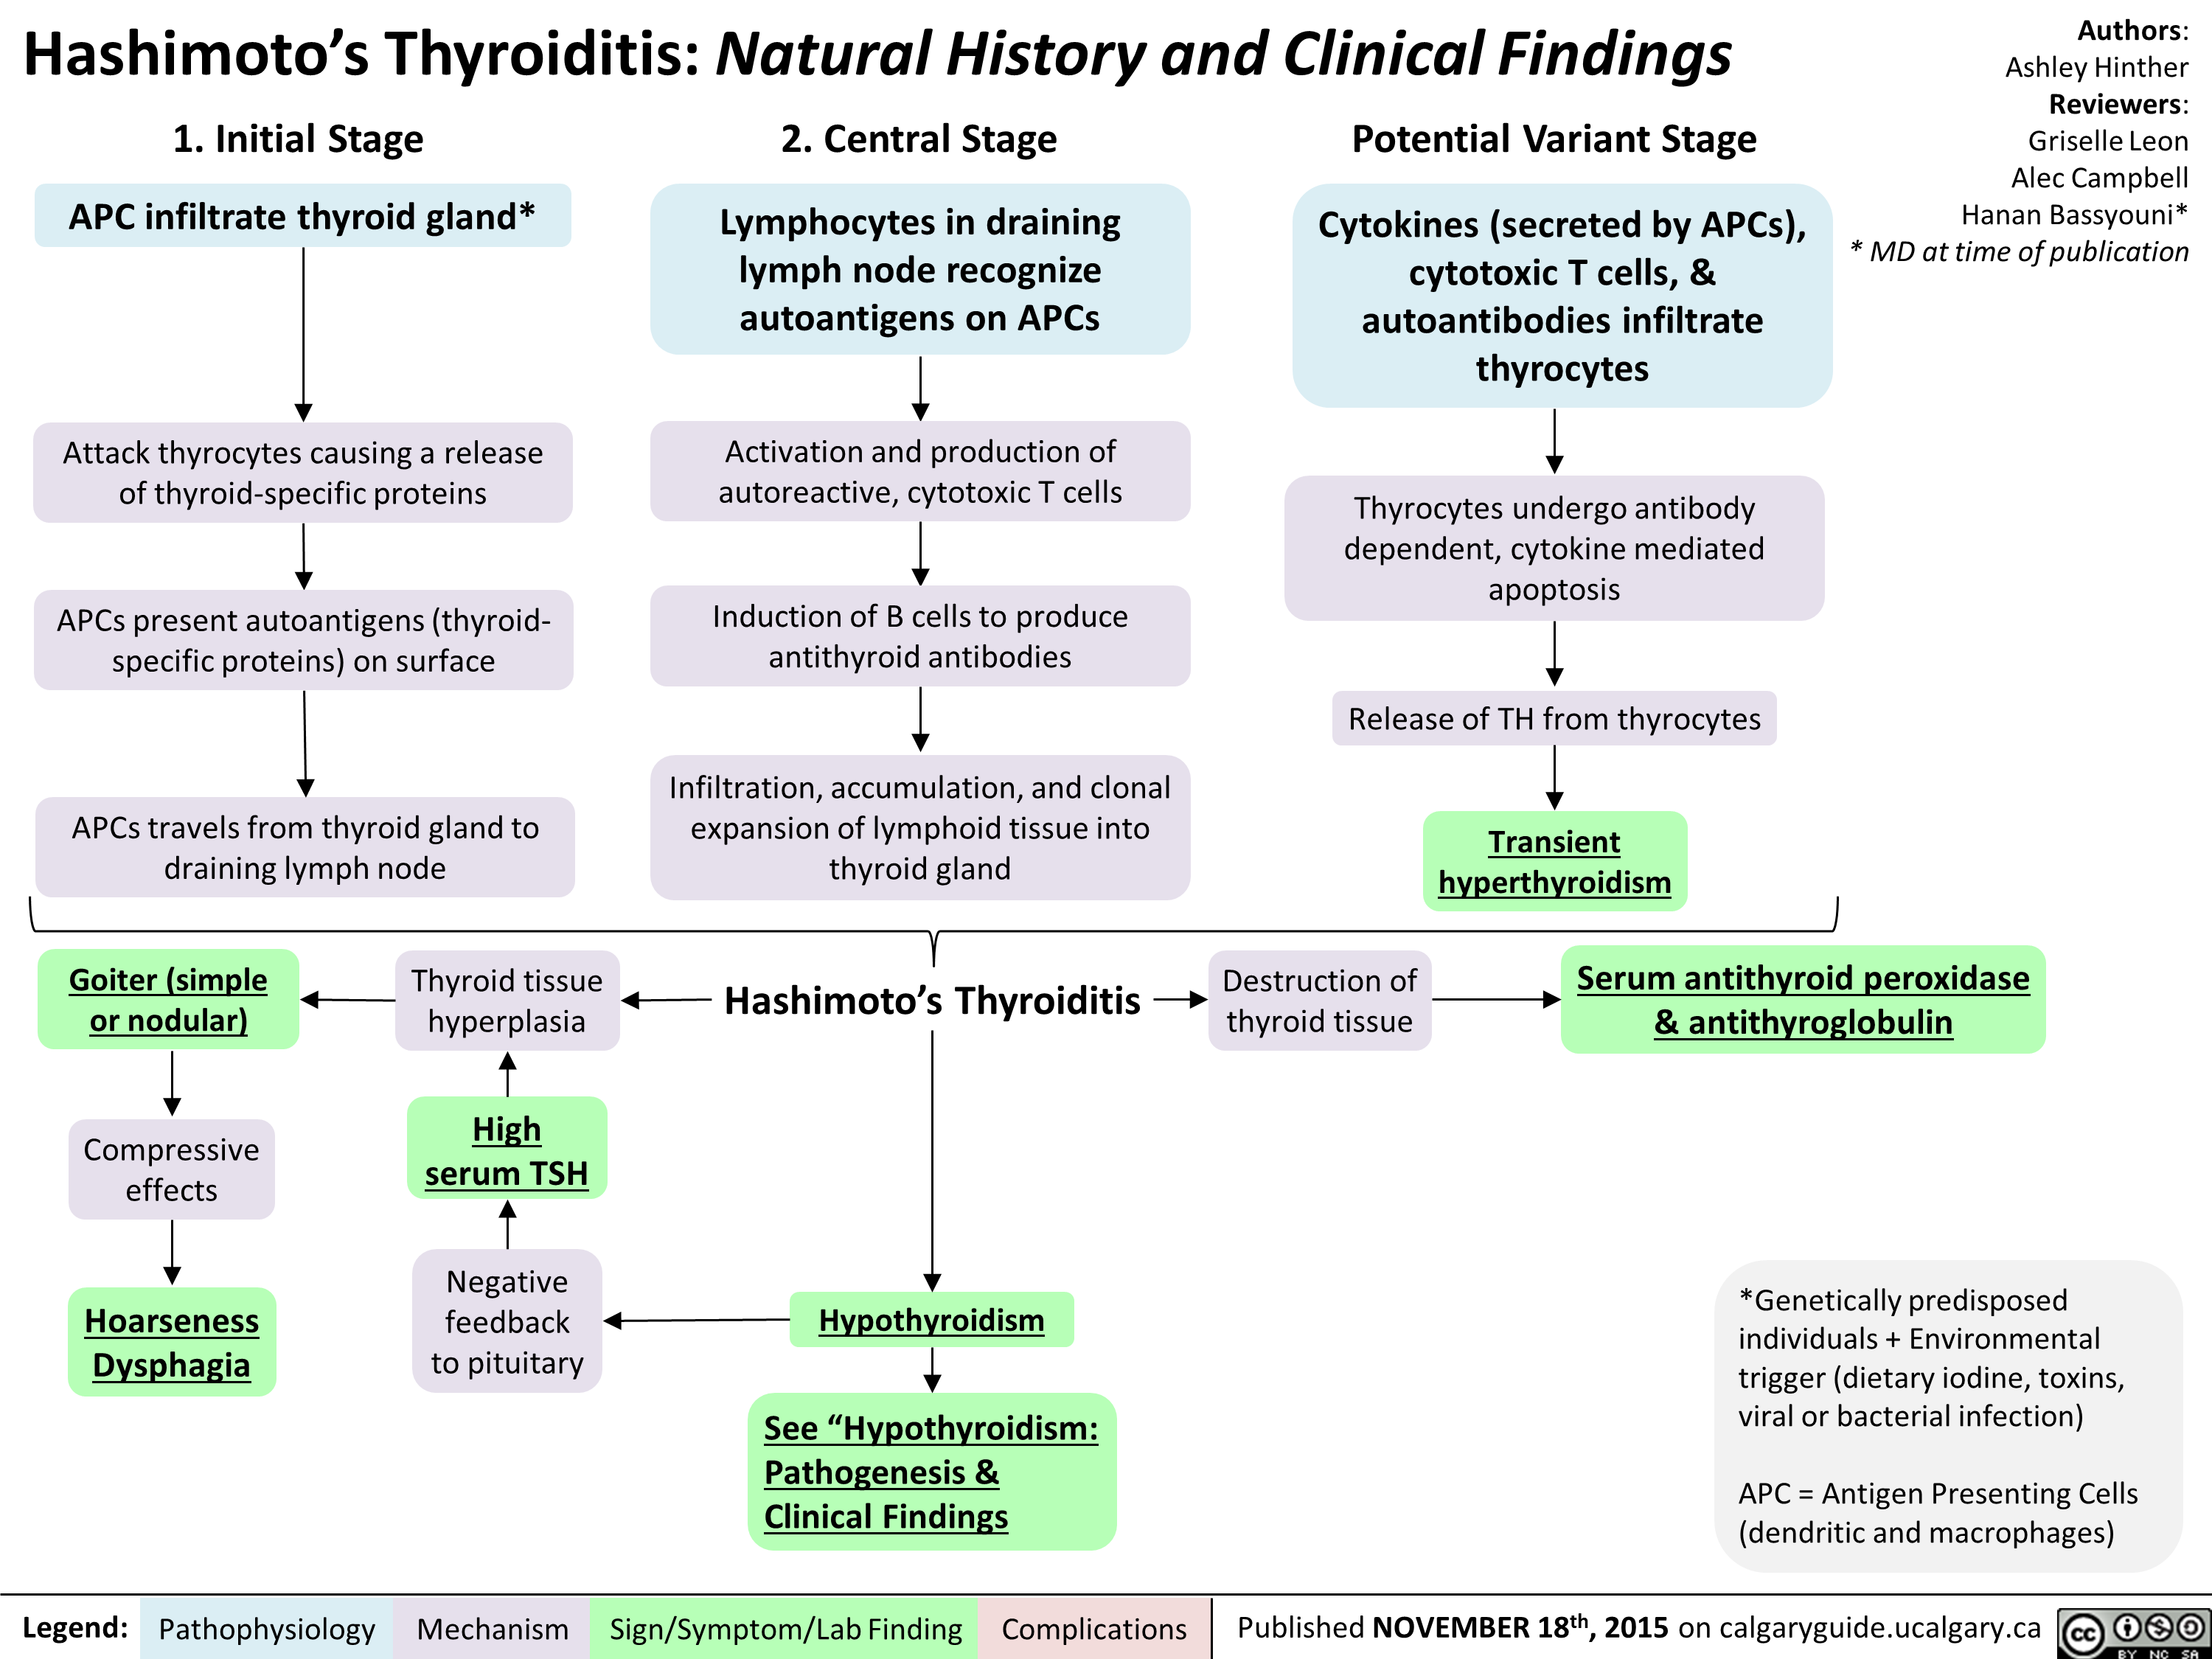 Hashimoto's Thyroiditis Natural History and Clinical Findings